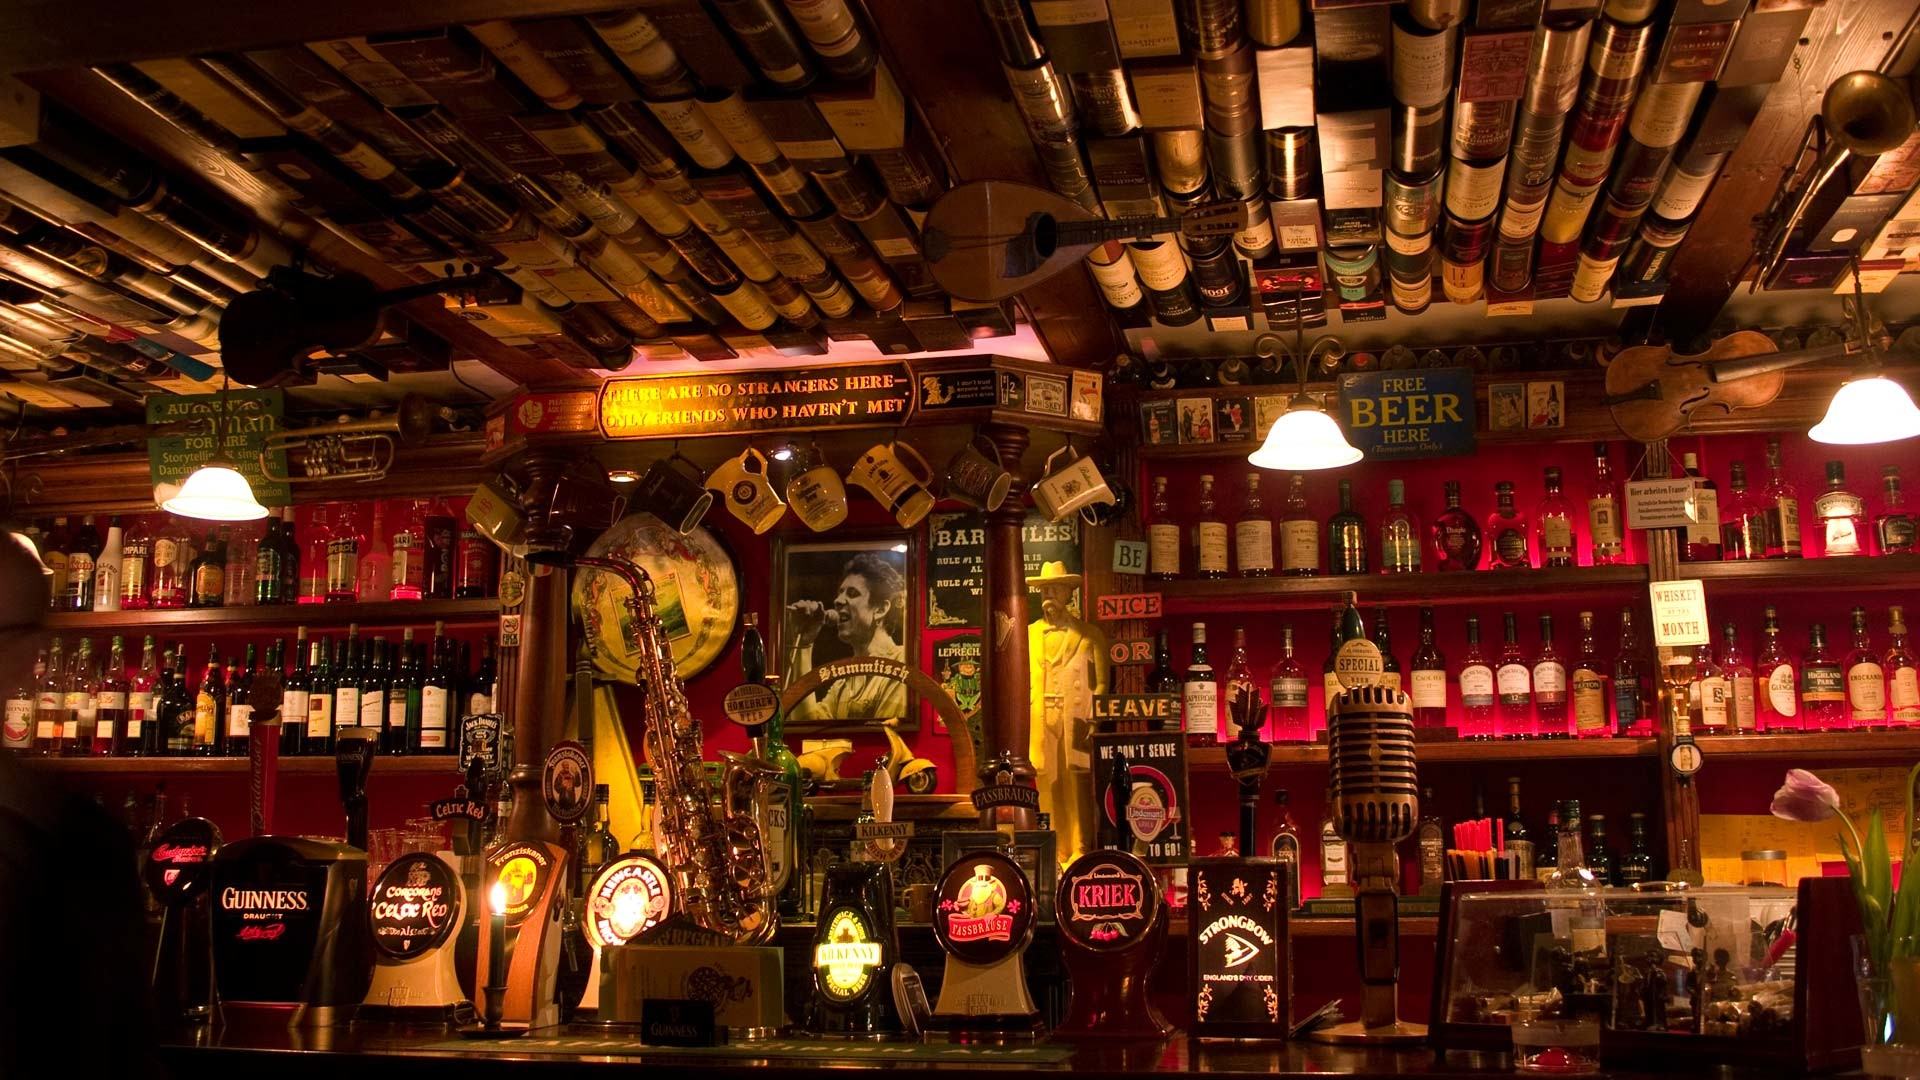 Irish Pub Wallpaper 68 Images HD Wallpapers Download Free Images Wallpaper [1000image.com]